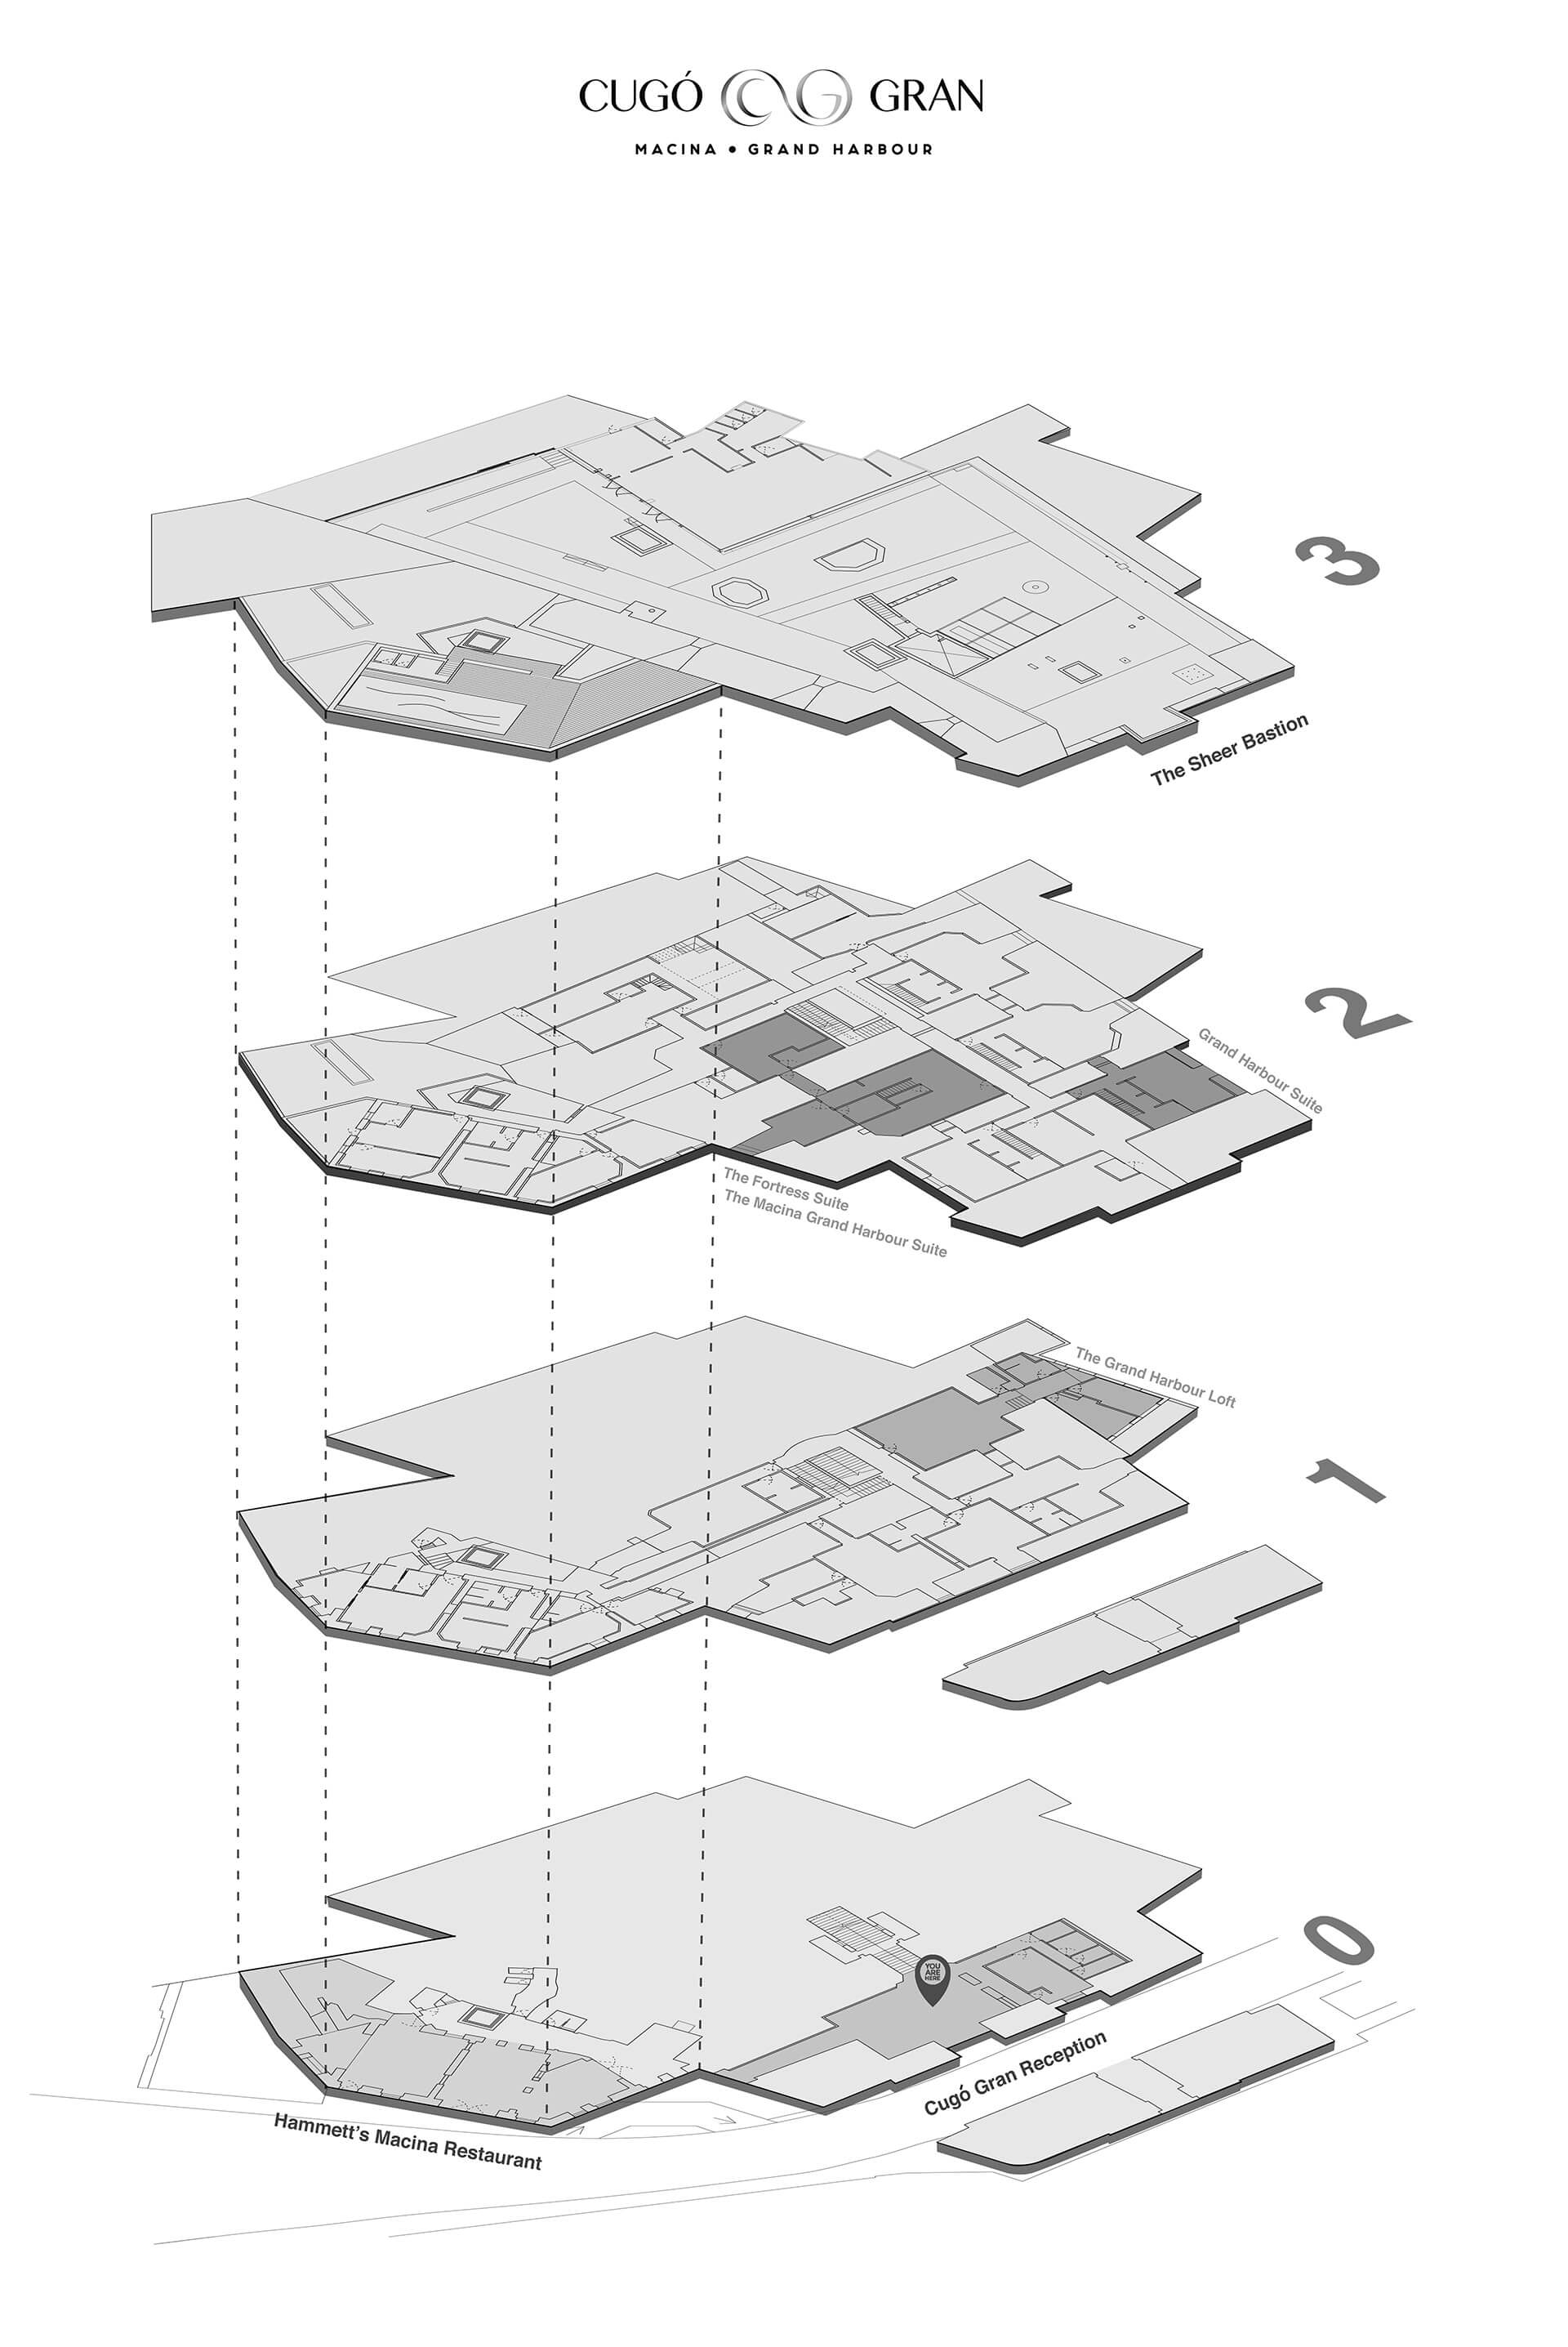 Exploded Axonometric View of Plans | DAAA Haus wins German Design Award 2020 for Cugó Gran Macina Grand Harbour | STIRworld